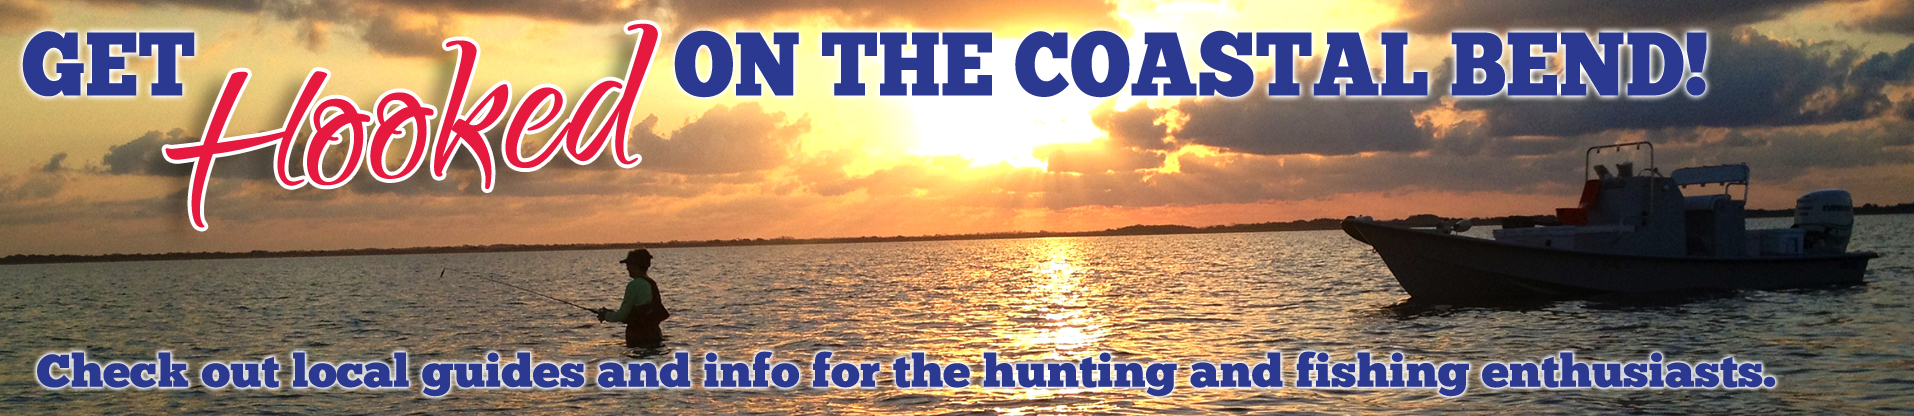 Get Hooked On The Coastal Bend!